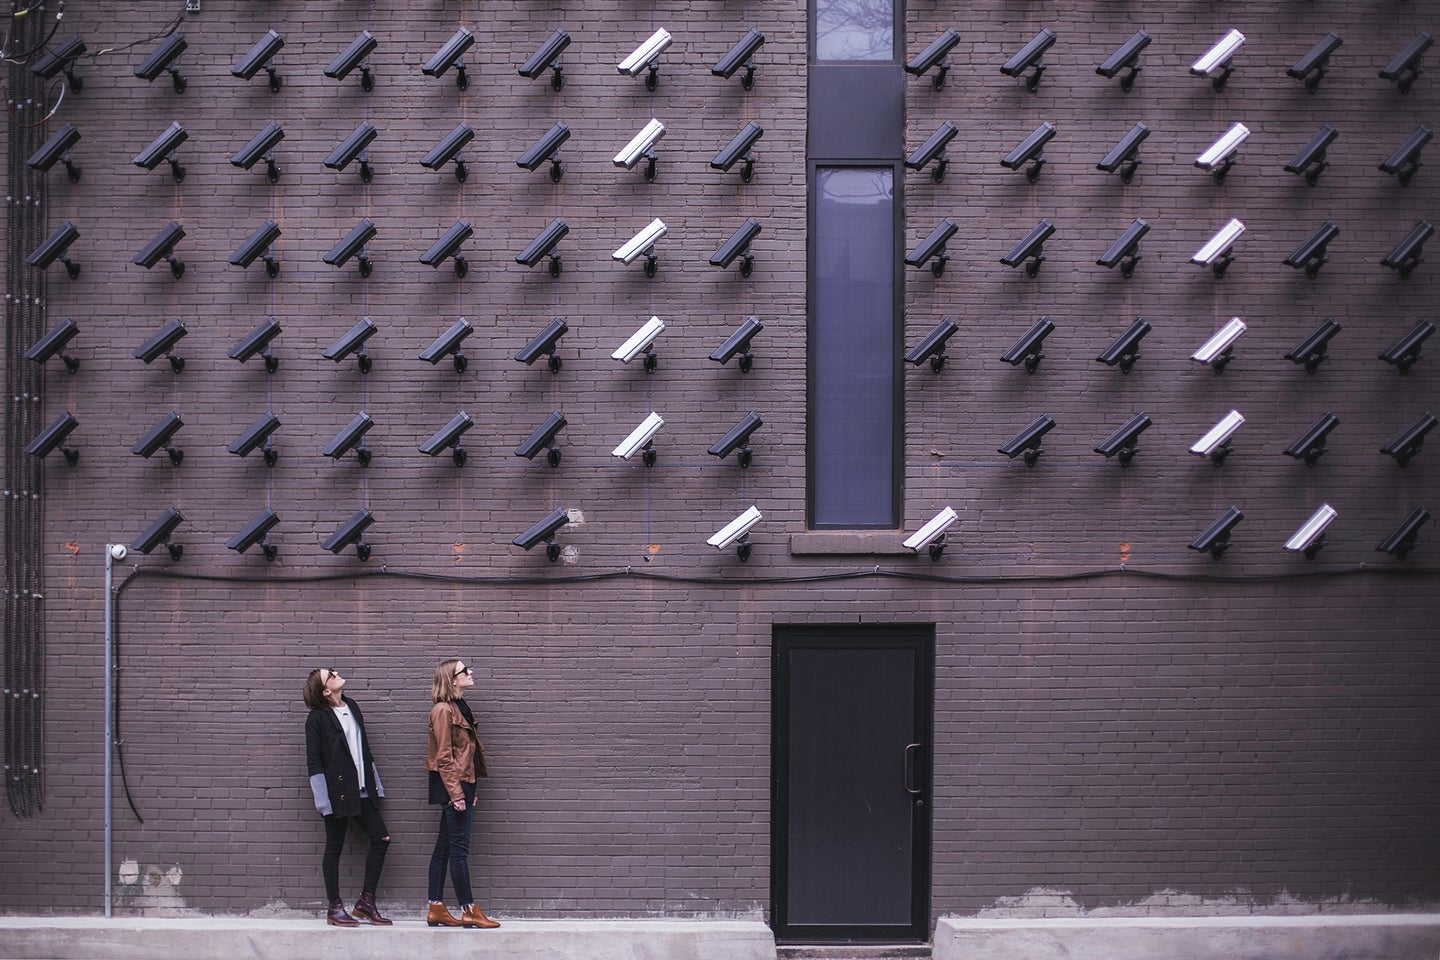 two people looking up at a lot of black and white security cameras mounted on a wall